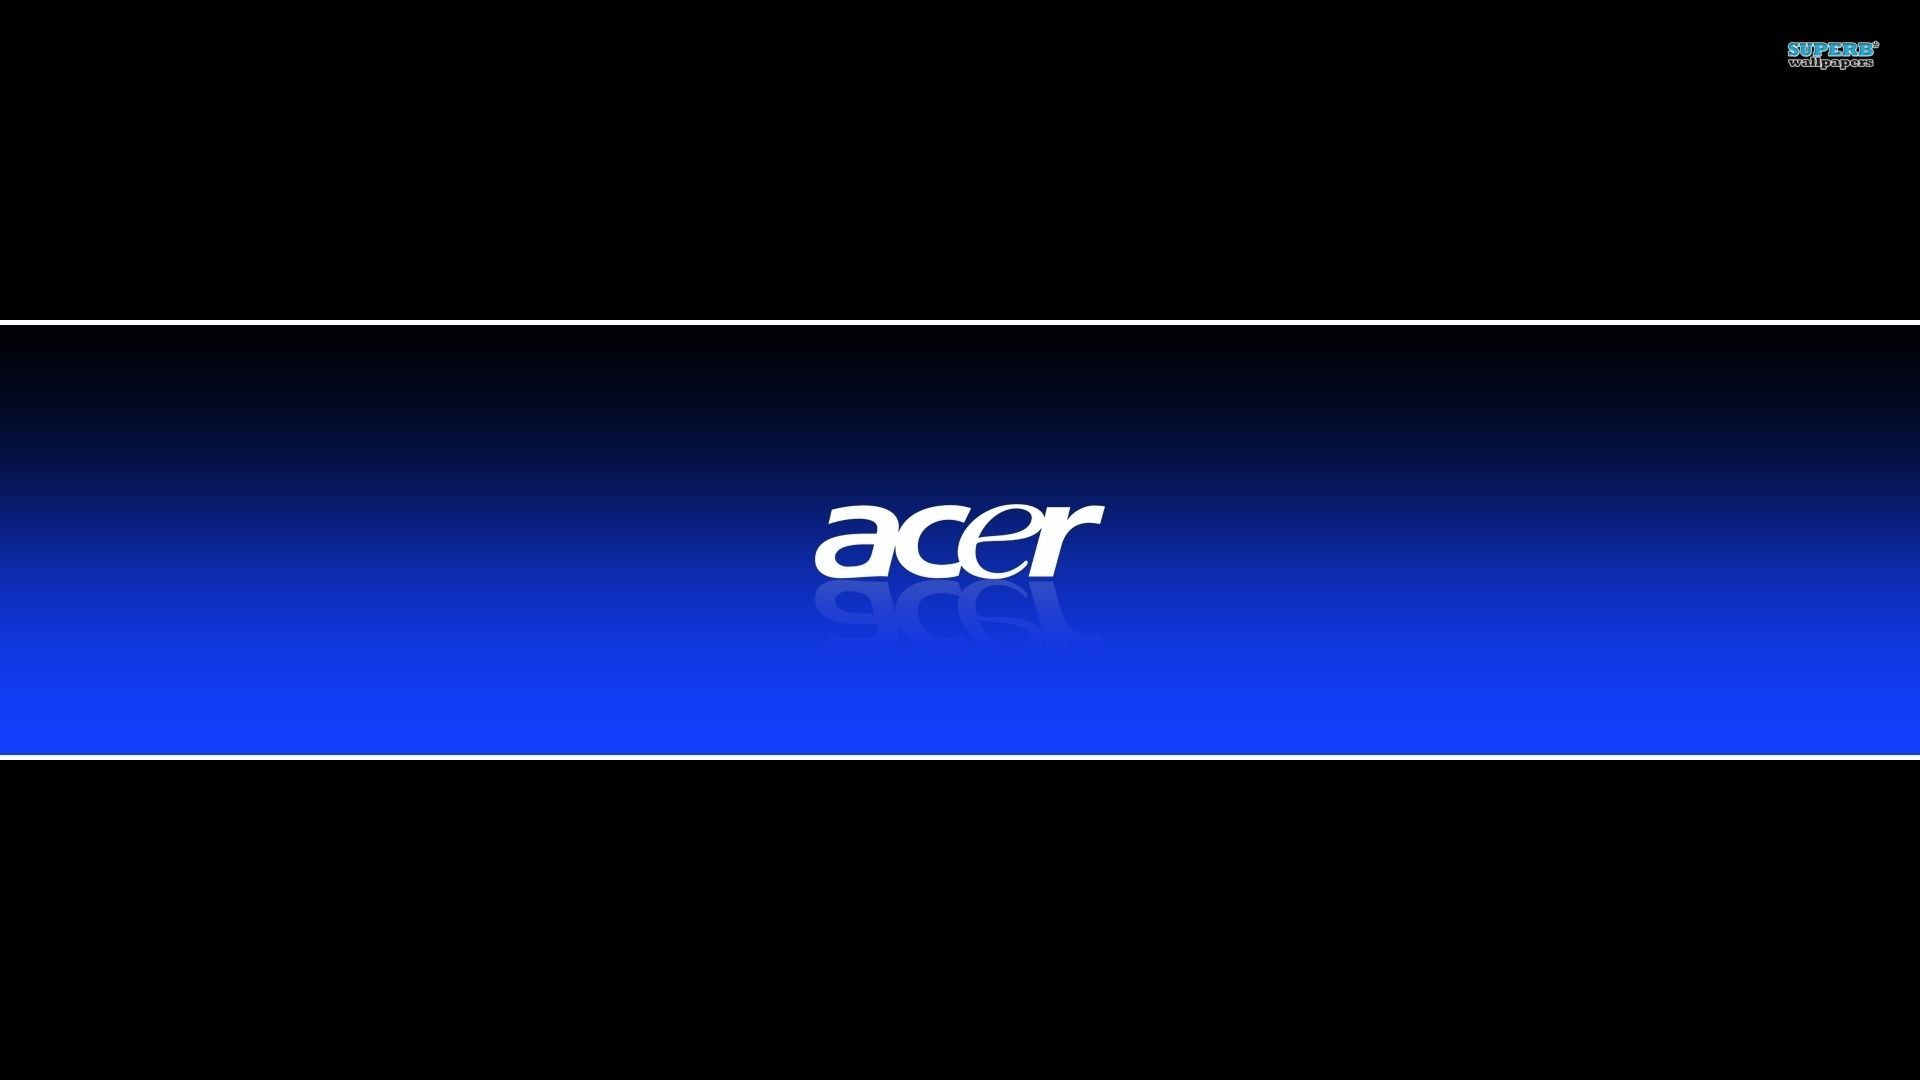 Acer Wallpapers Windows 7 1920x1080